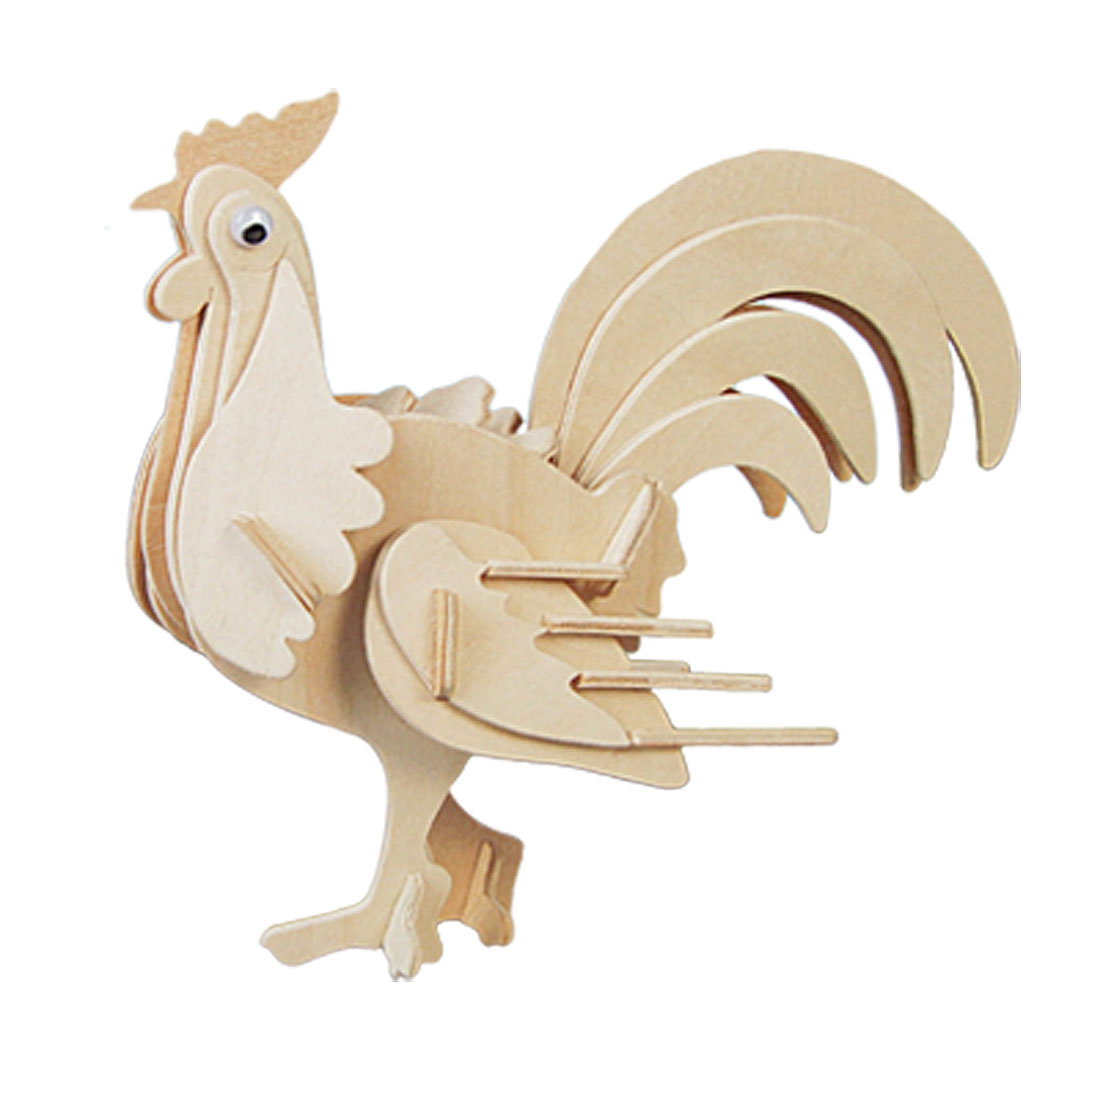 Cock Model Puzzle Woodcraft Construction Kit Toy